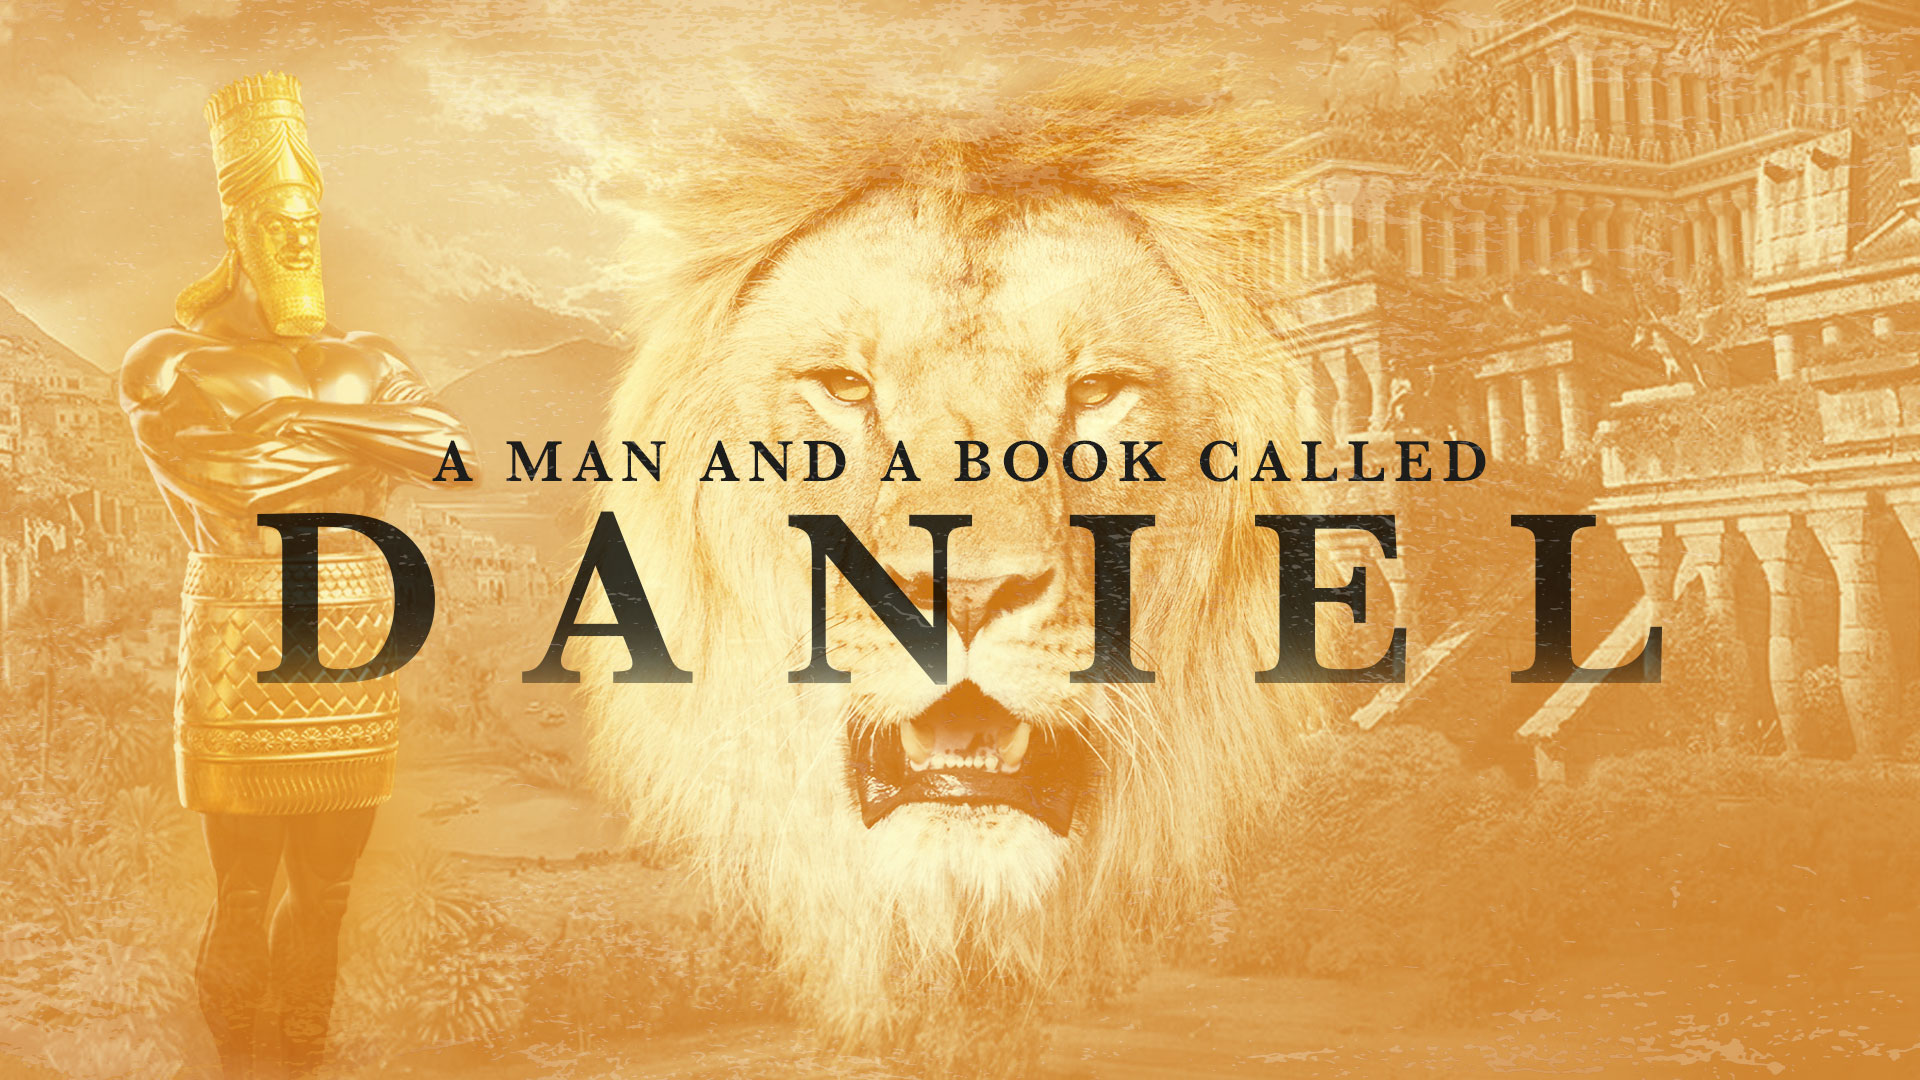 A book and a man called Daniel (Pt 1) Two kings, two cities and four teenagers